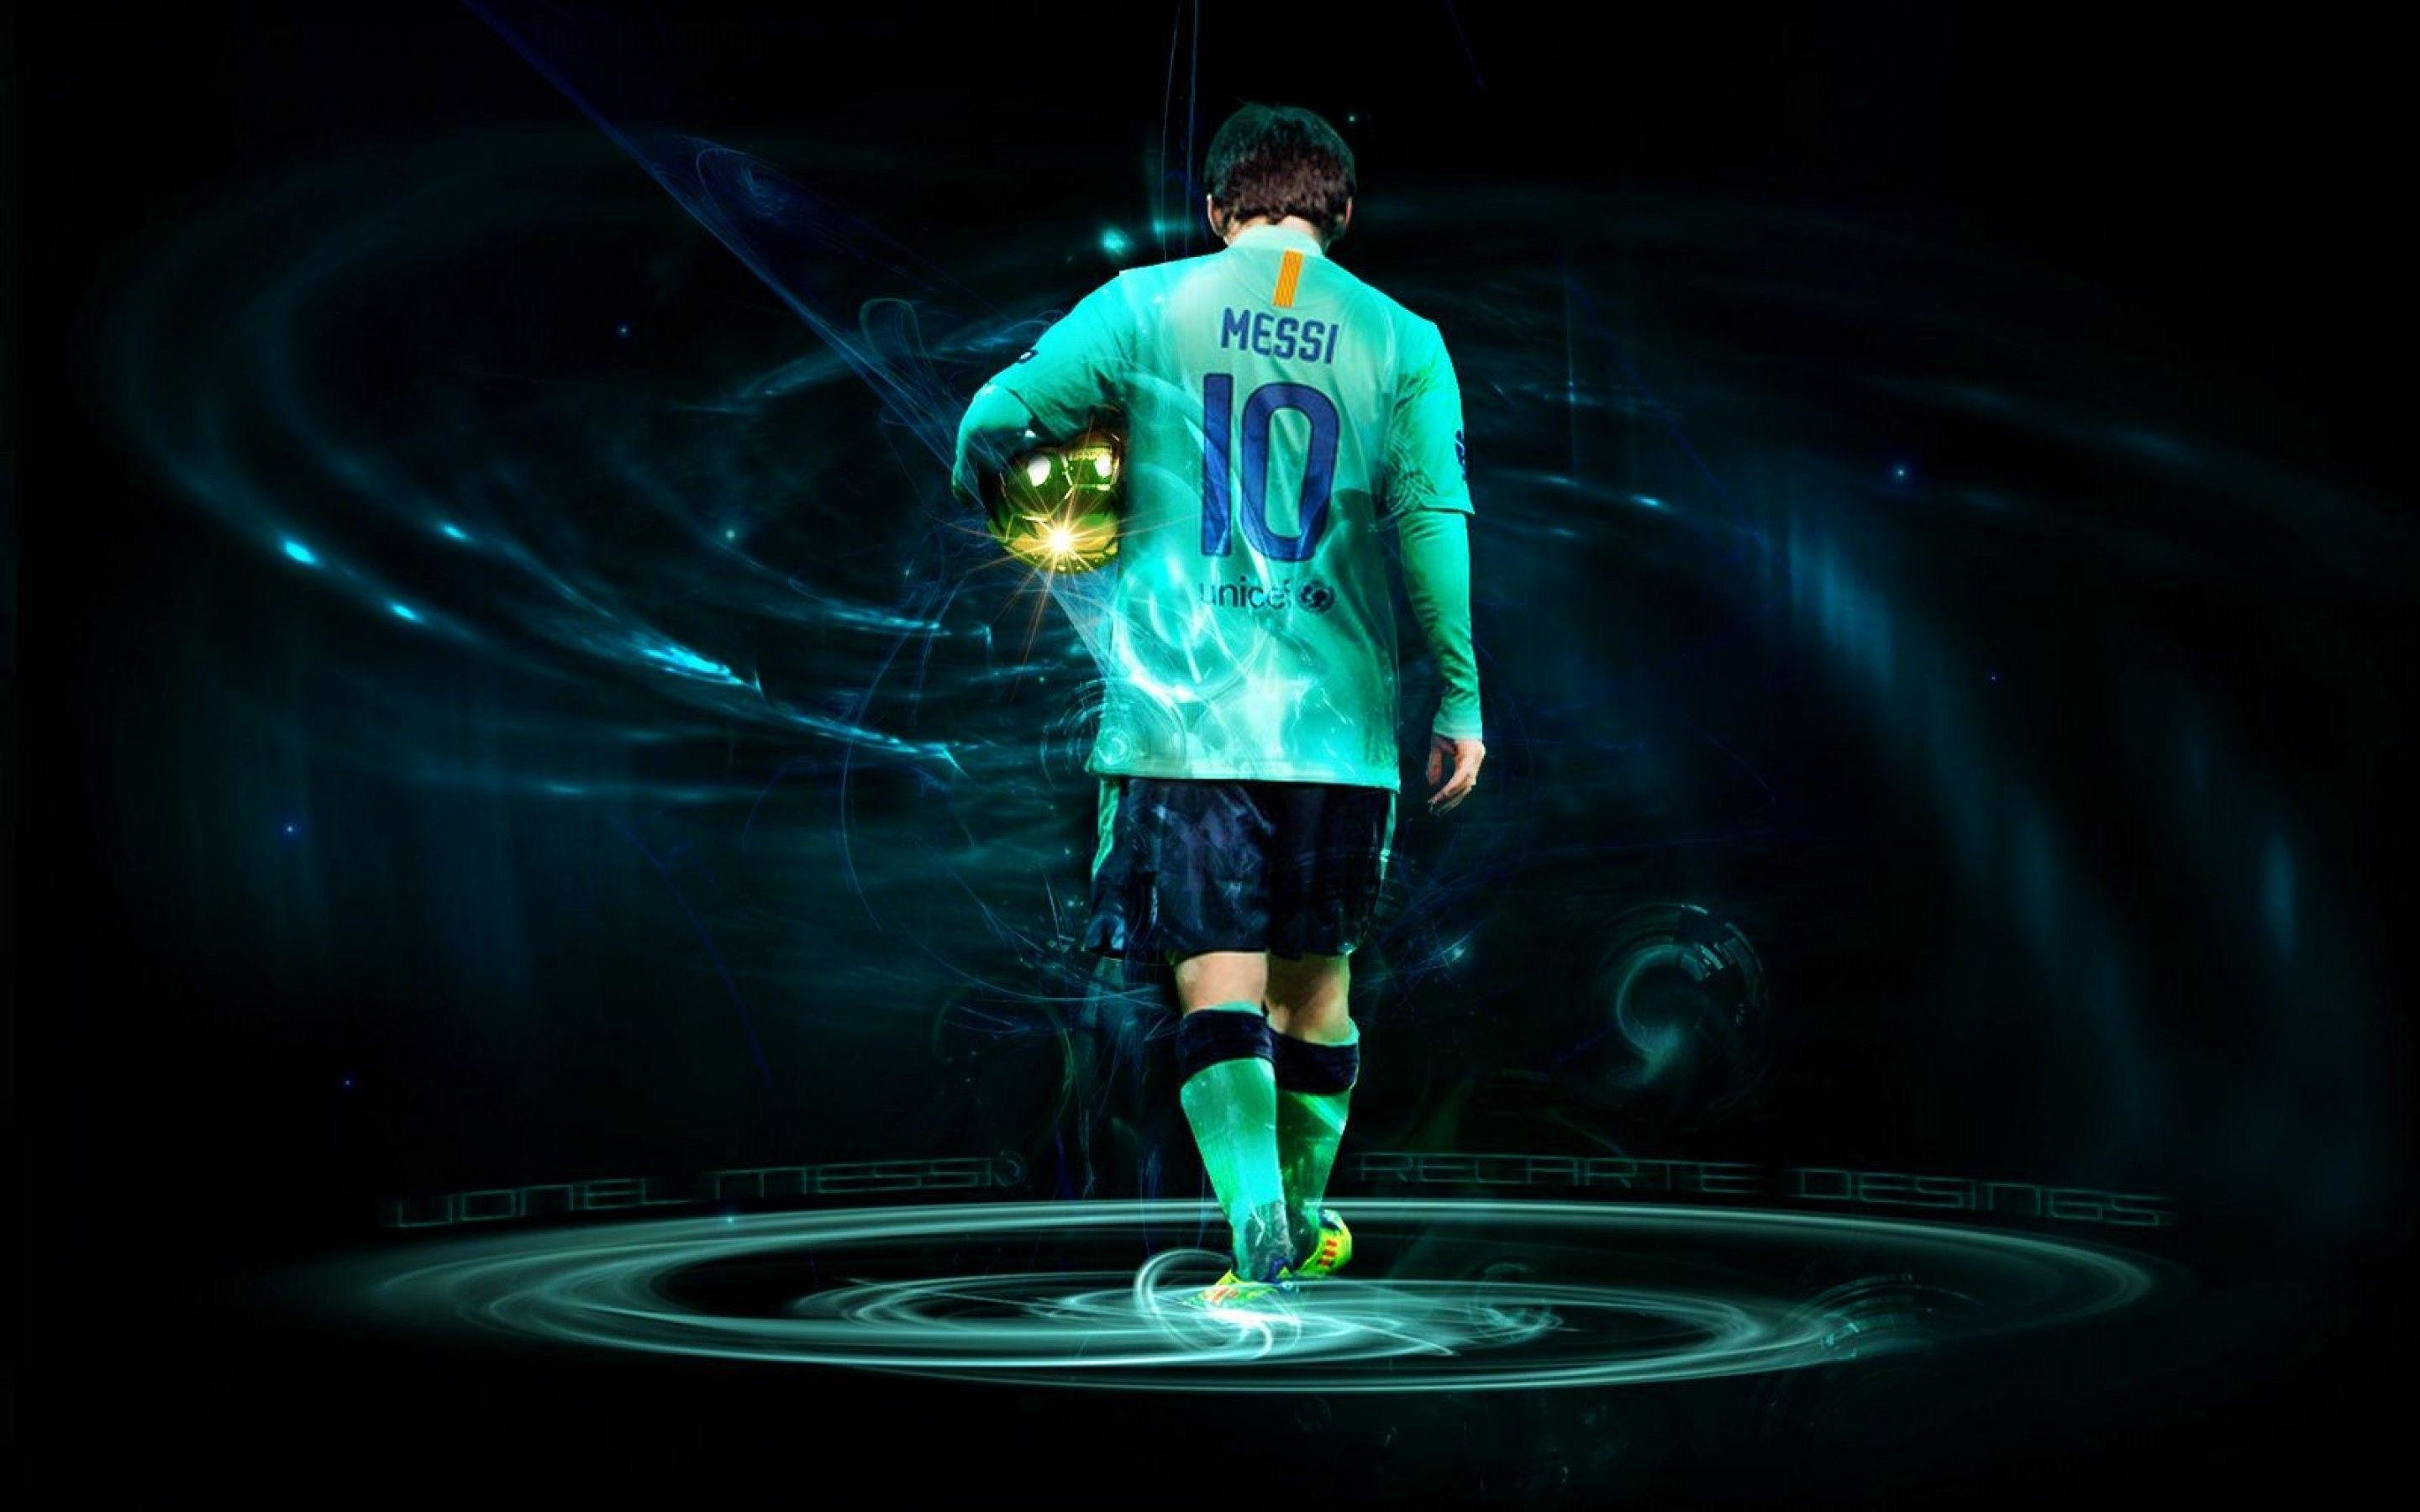 … lionel messi wallpapers hd wallpaper cave …